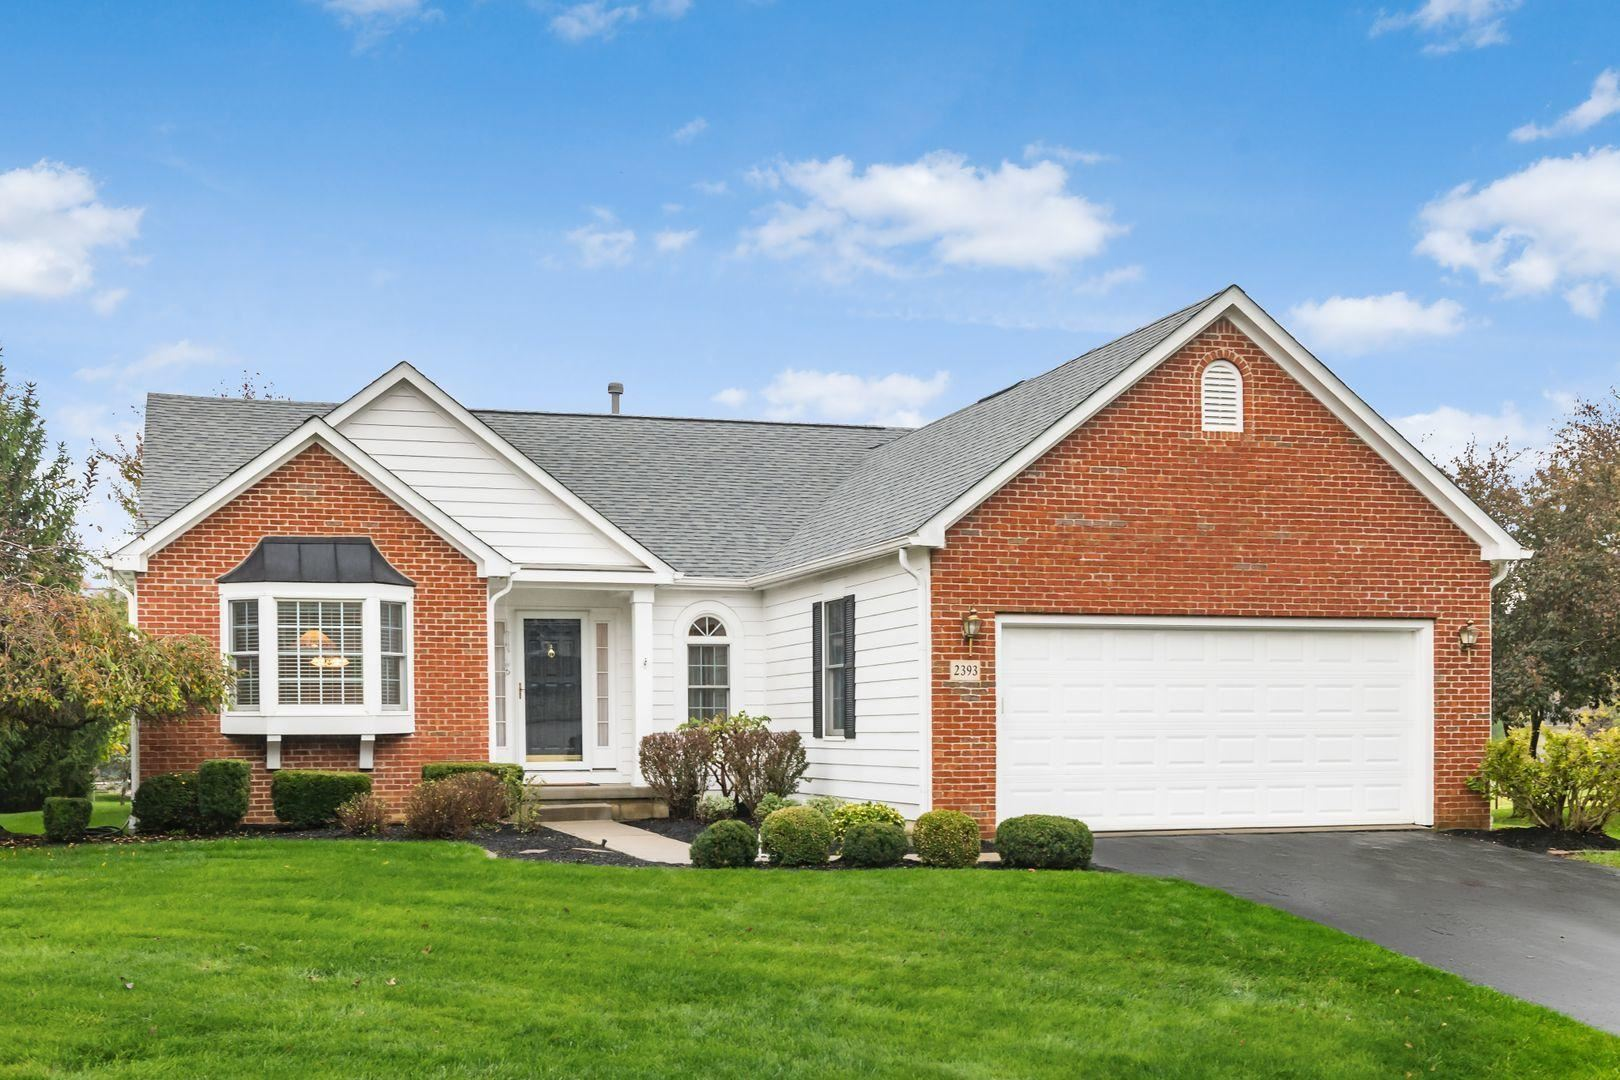 Photo of 2393 Meadowshire Road, Galena, OH 43021 (MLS # 220038273)